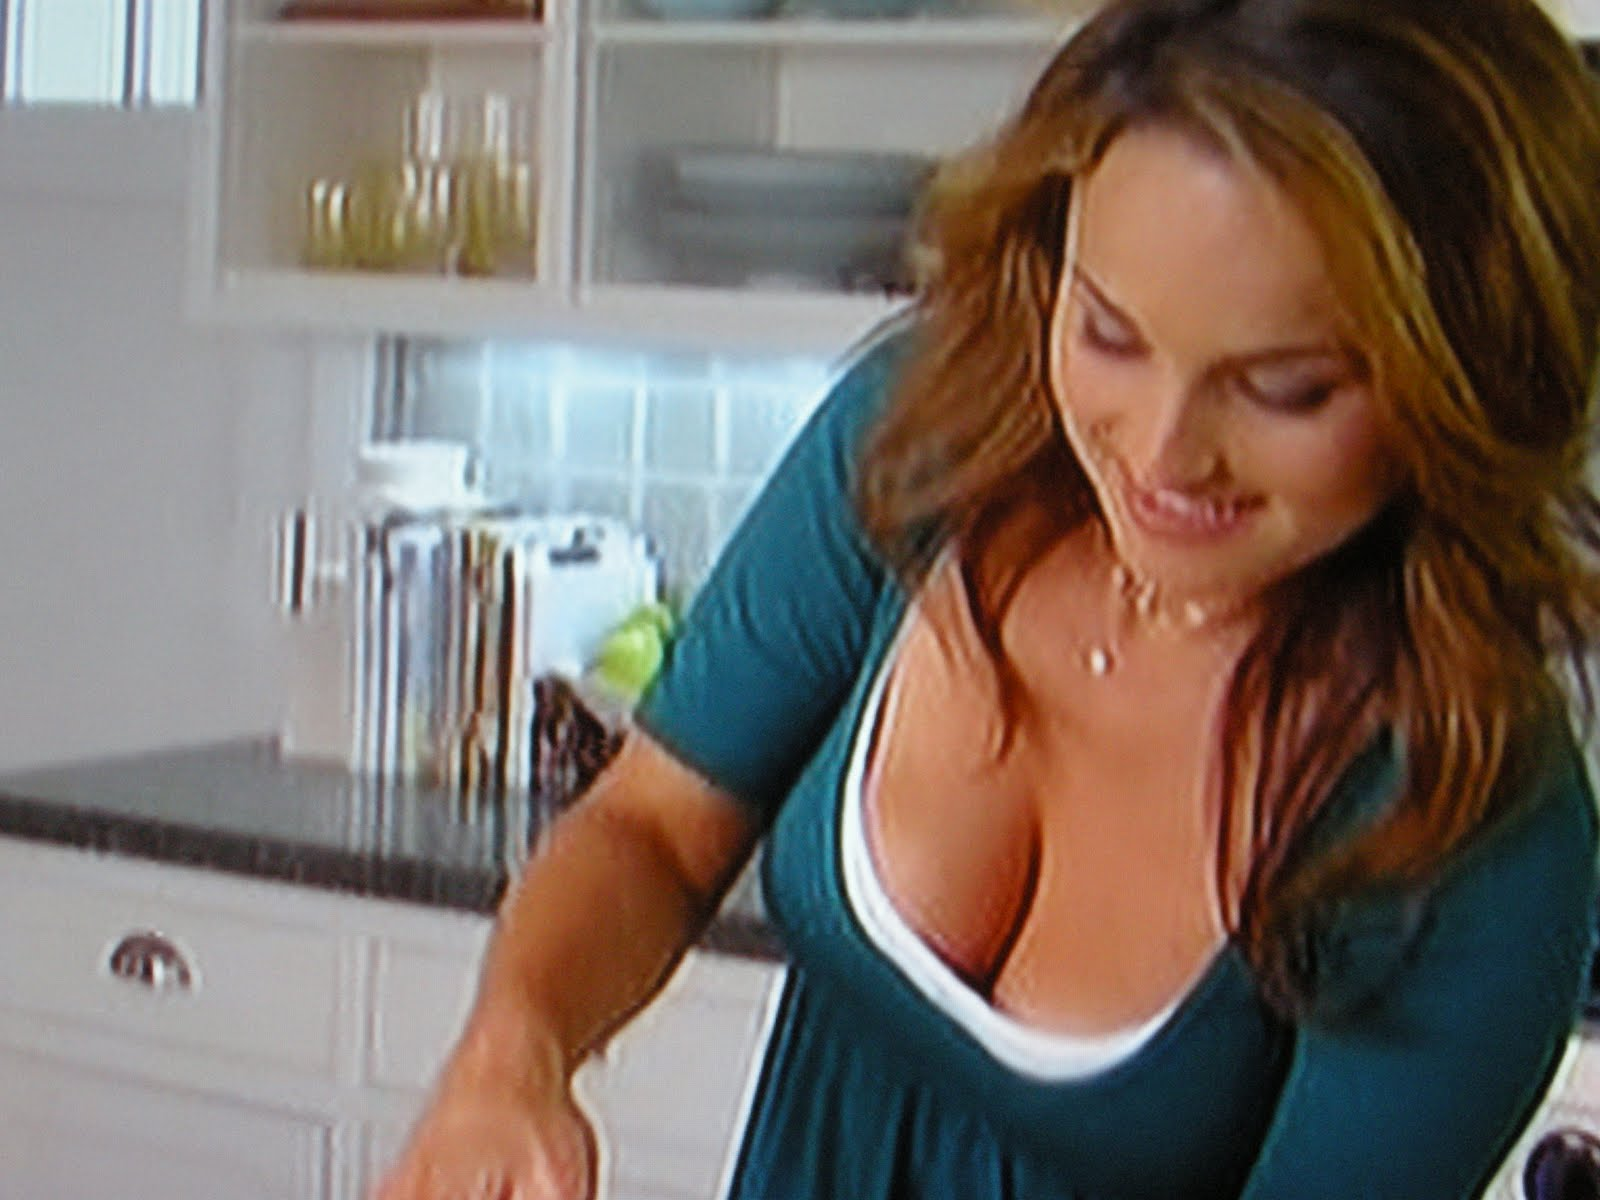 You giada de laurentiis bikini pic ass she